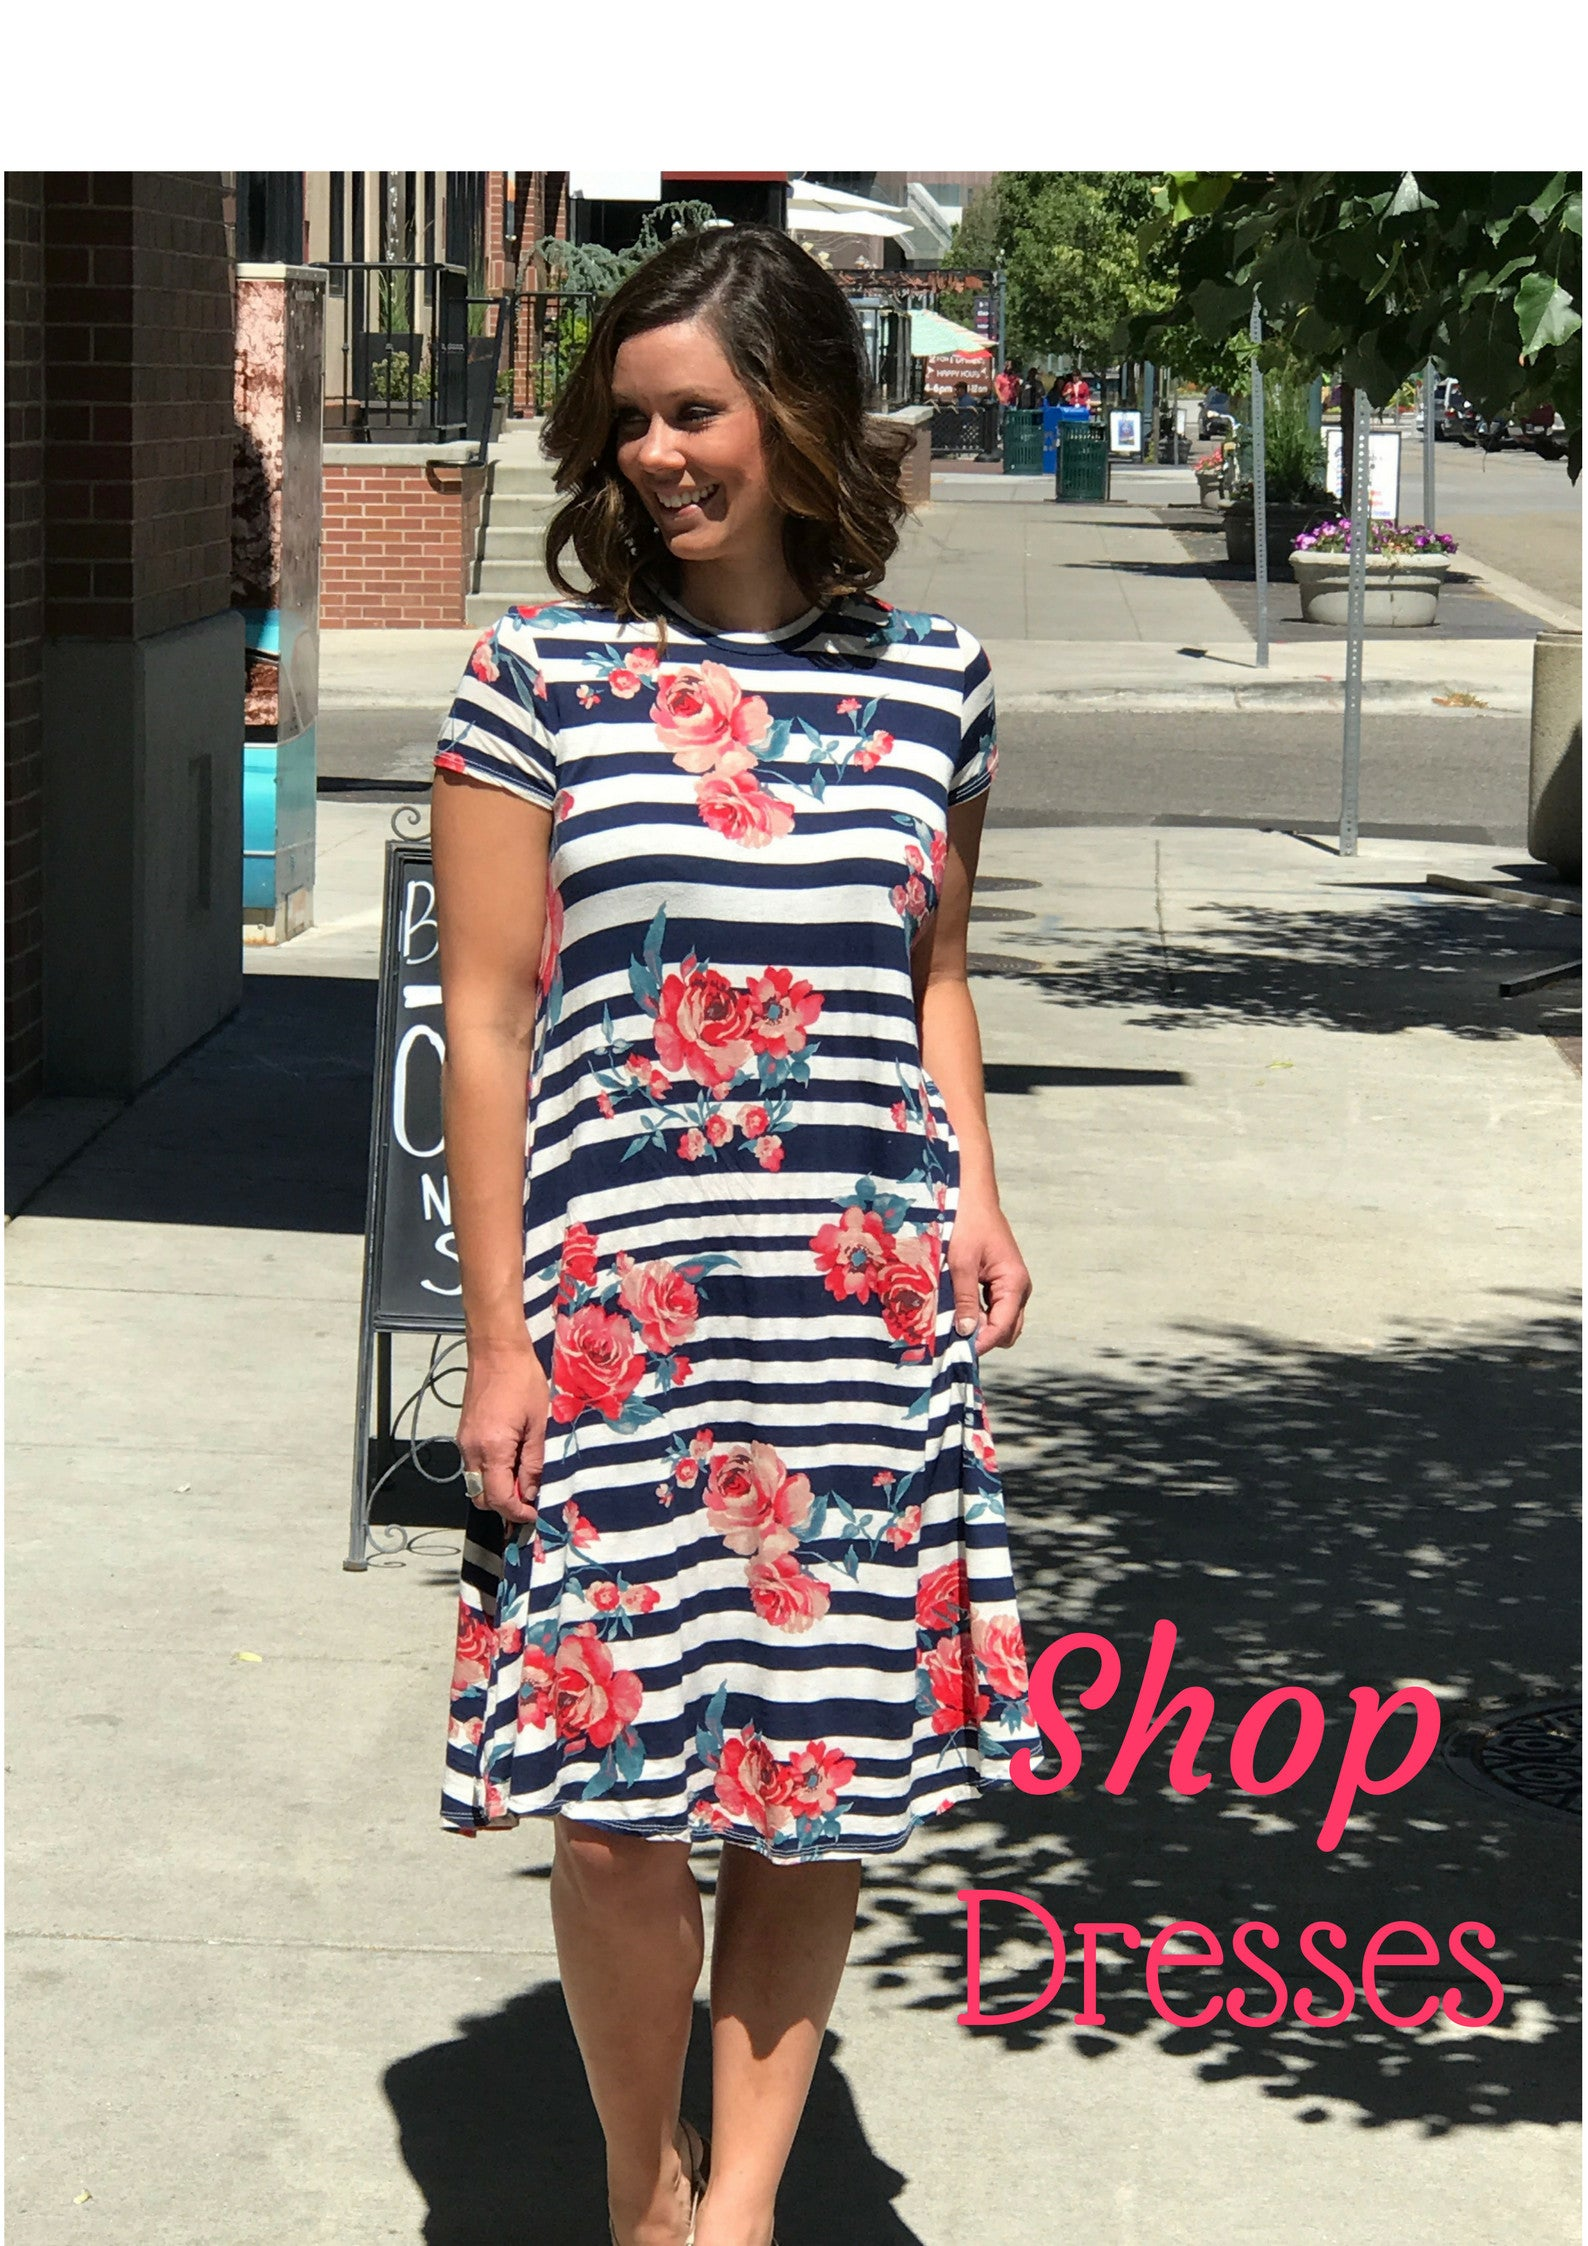 boise boutique, boise shopping, boise women's boutique, boise women's clothing store, boise women's clothing boutique,